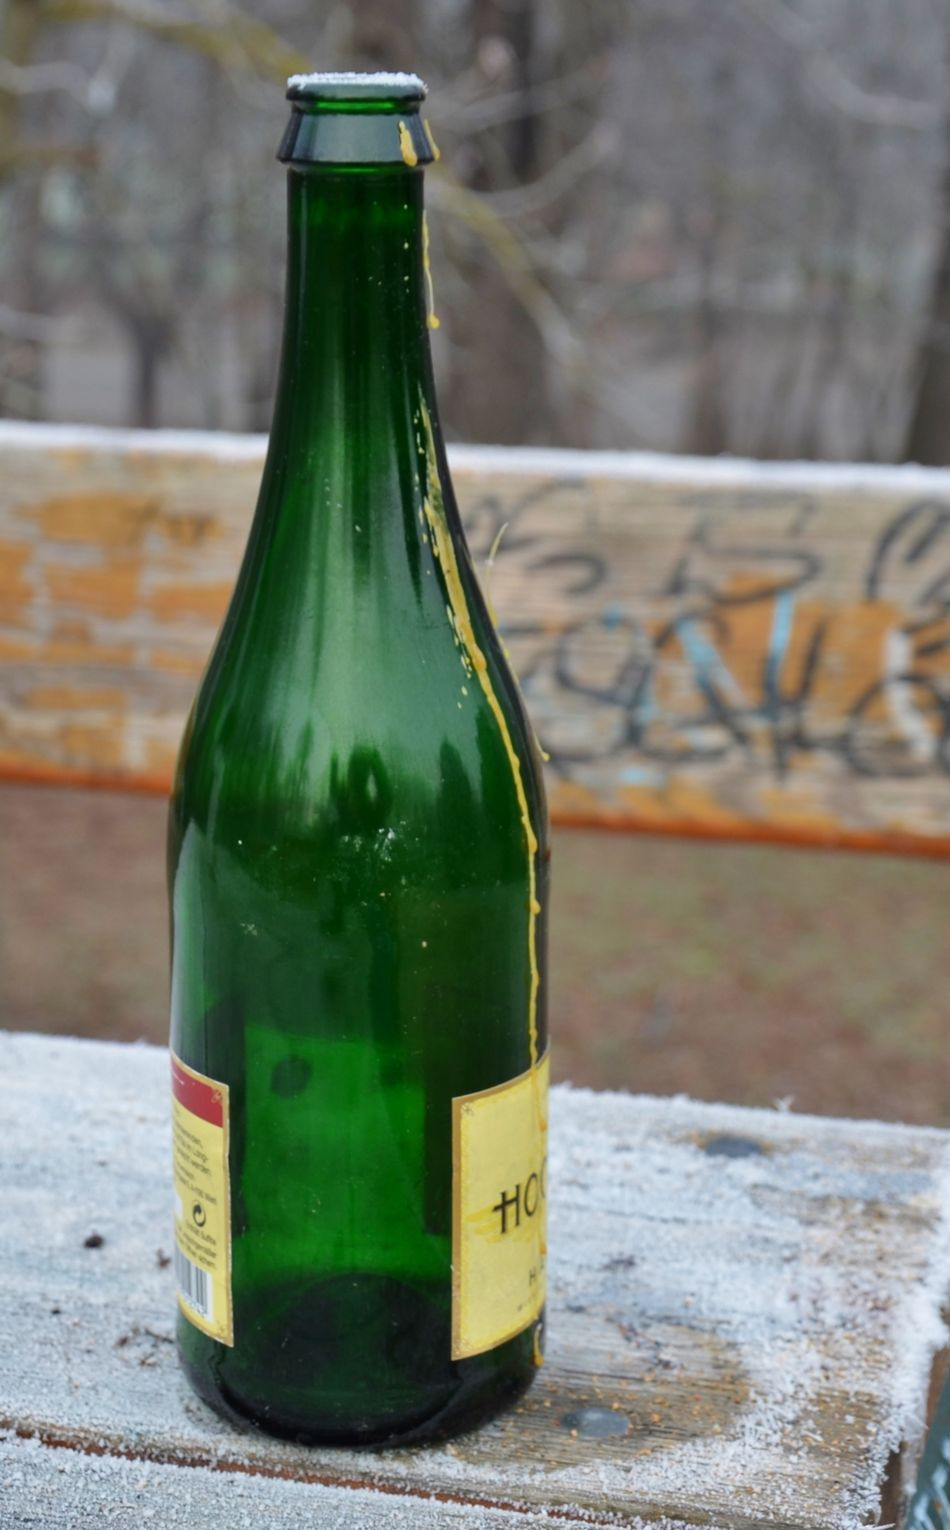 Bottle Close-up Cold Temperature Day Drink Focus On Foreground Food And Drink Green Color No People Outdoors Table The Day After Winter